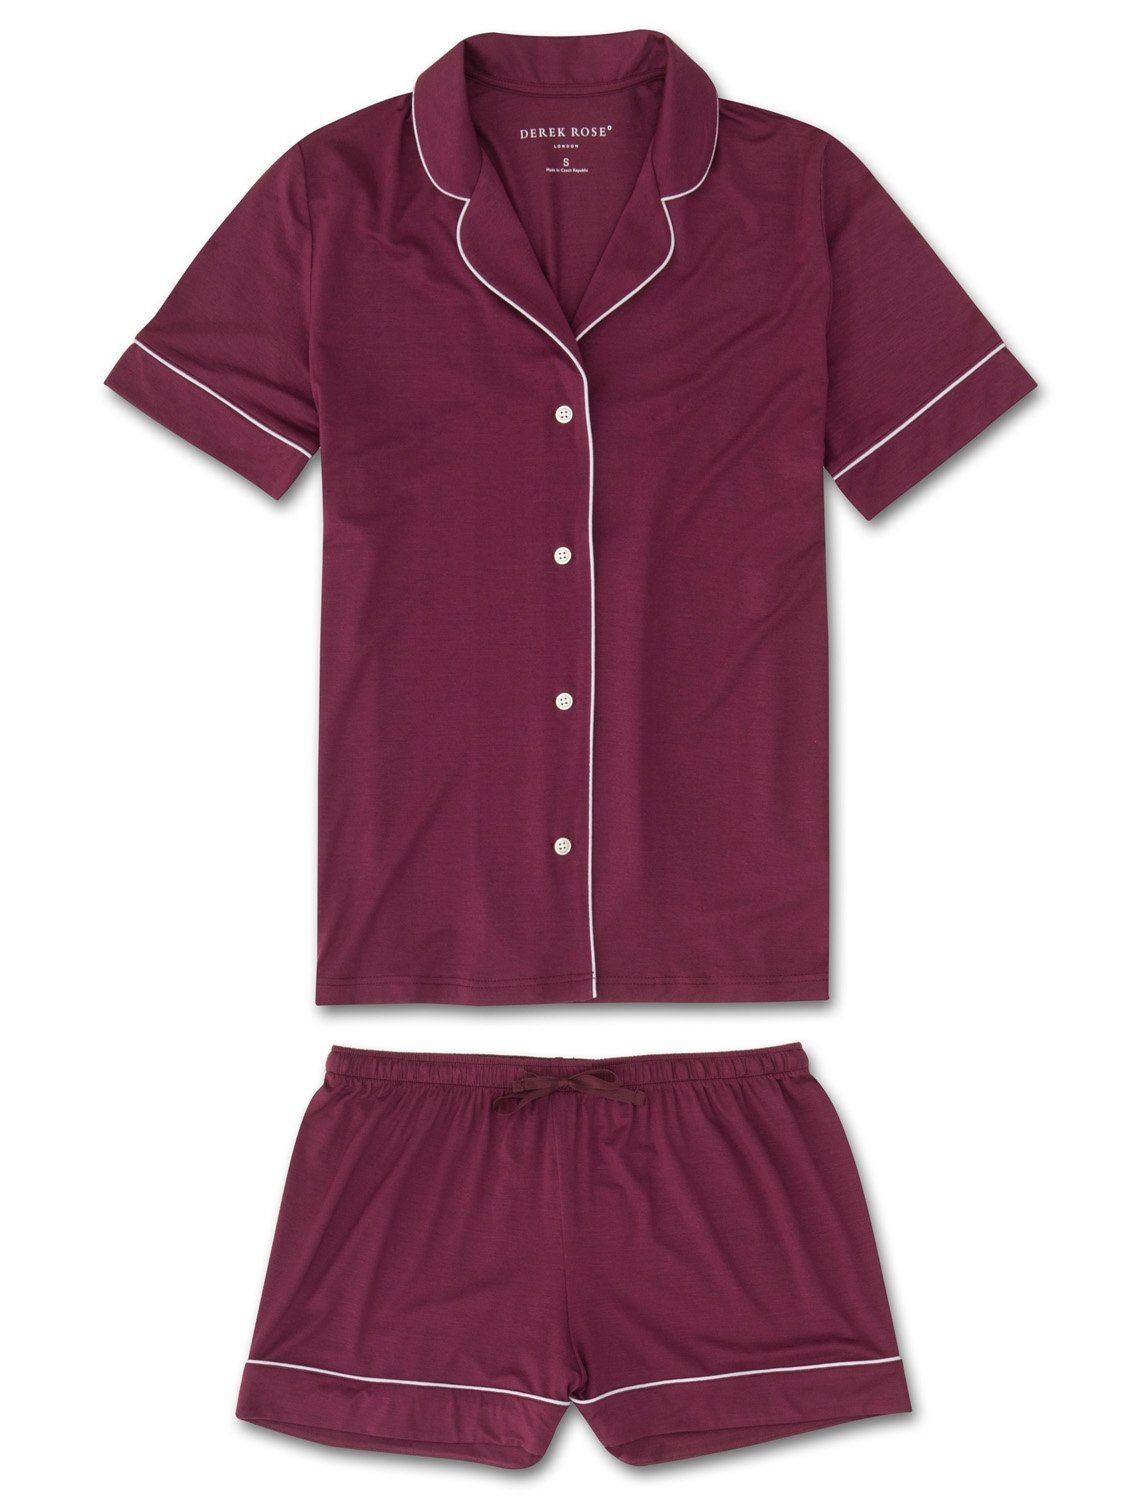 Women's Jersey Shortie Pyjamas Carla 4 Micro Modal Stretch Burgundy